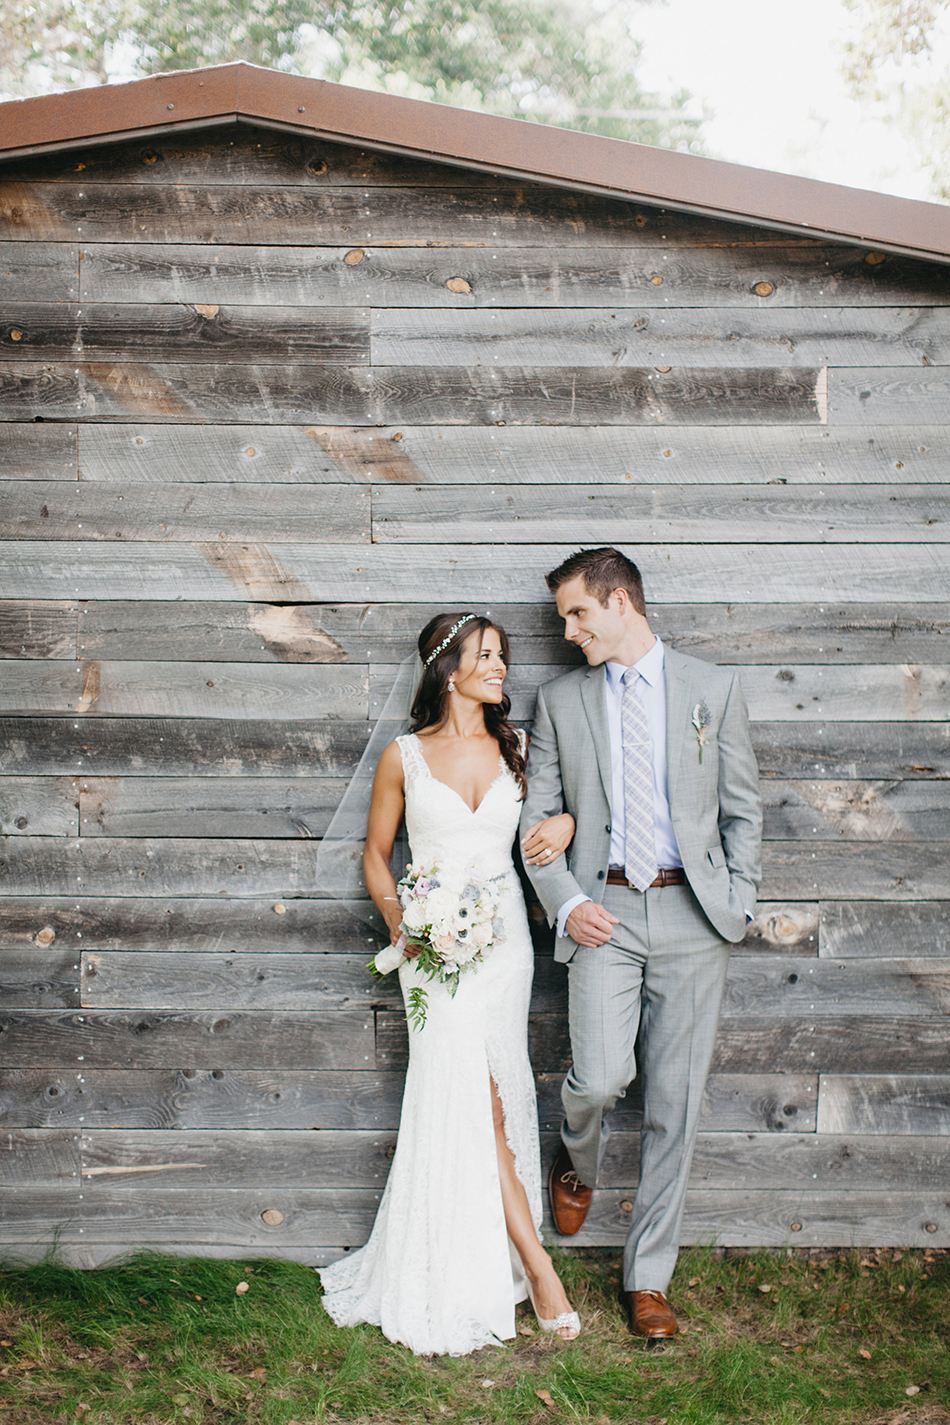 elizabethdye_california_realwedding_01.jpg